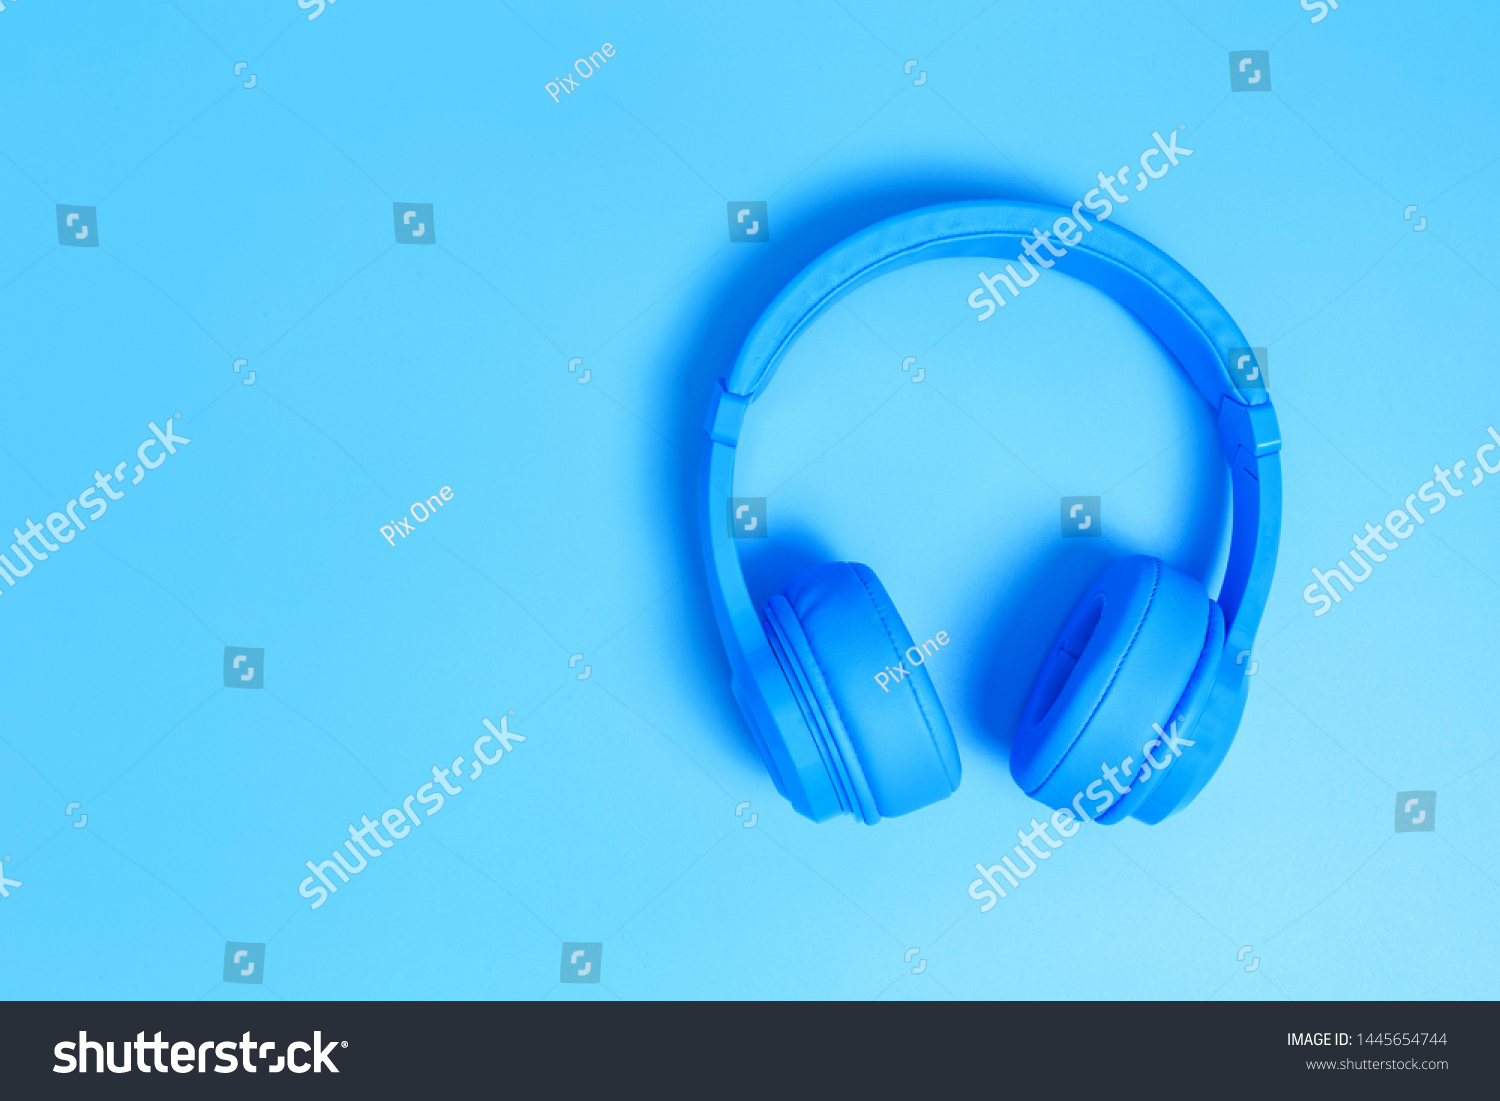 a headphones, Top view of headphones on blue background. Minimalist photo of earphones with copy space. blue dj headphones, Top view blue headphones on blue background. Above view of dj head phones. #1445654744